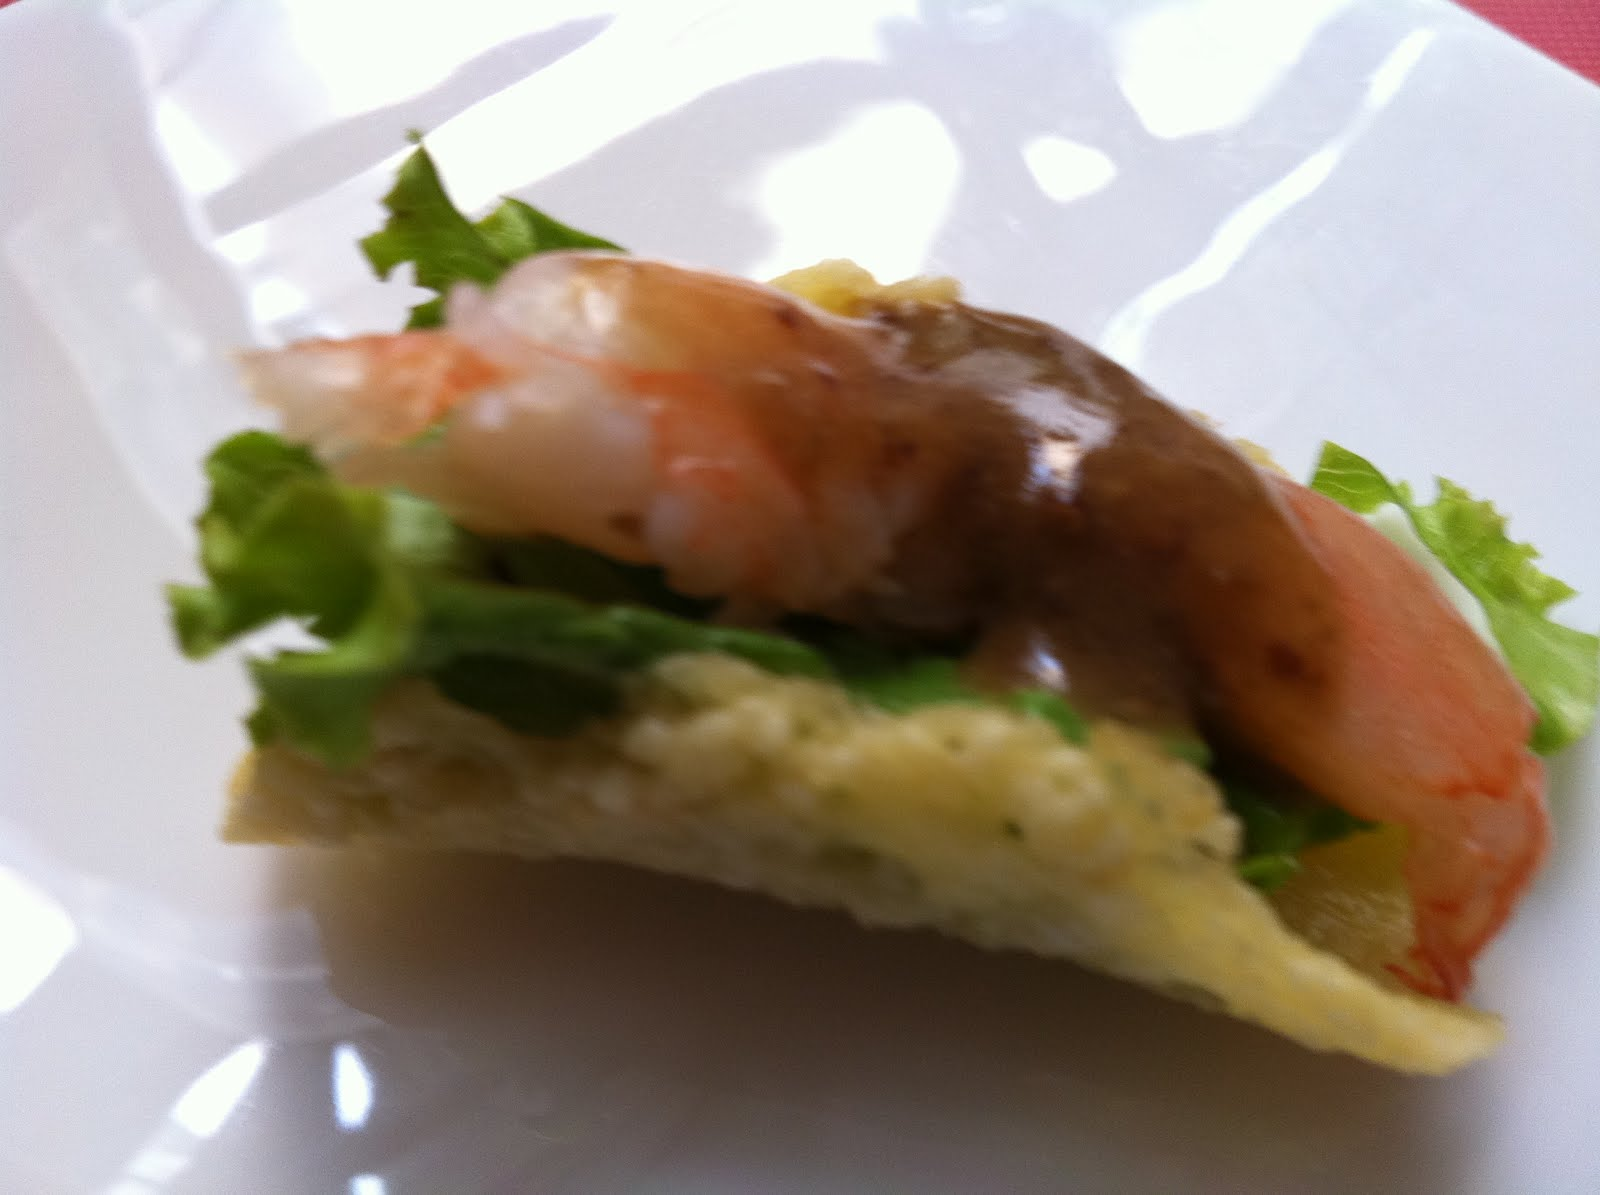 Canapes hors d 39 oeuvre 39 s tapas ii cupacake for Canape hors d oeuvres difference